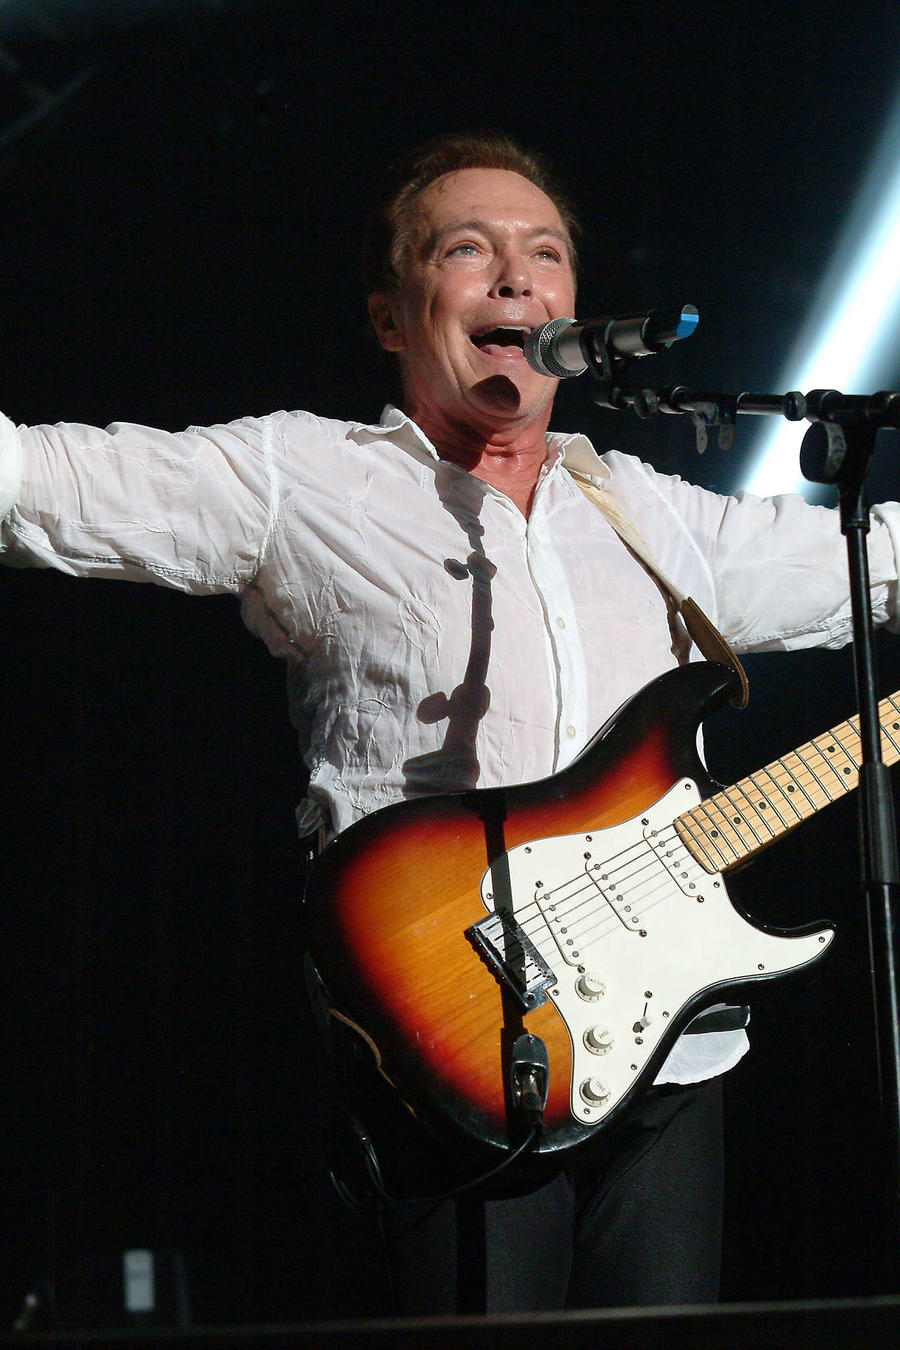 David Cassidy Kicks 'Insensitive' Fan Out Of Concert